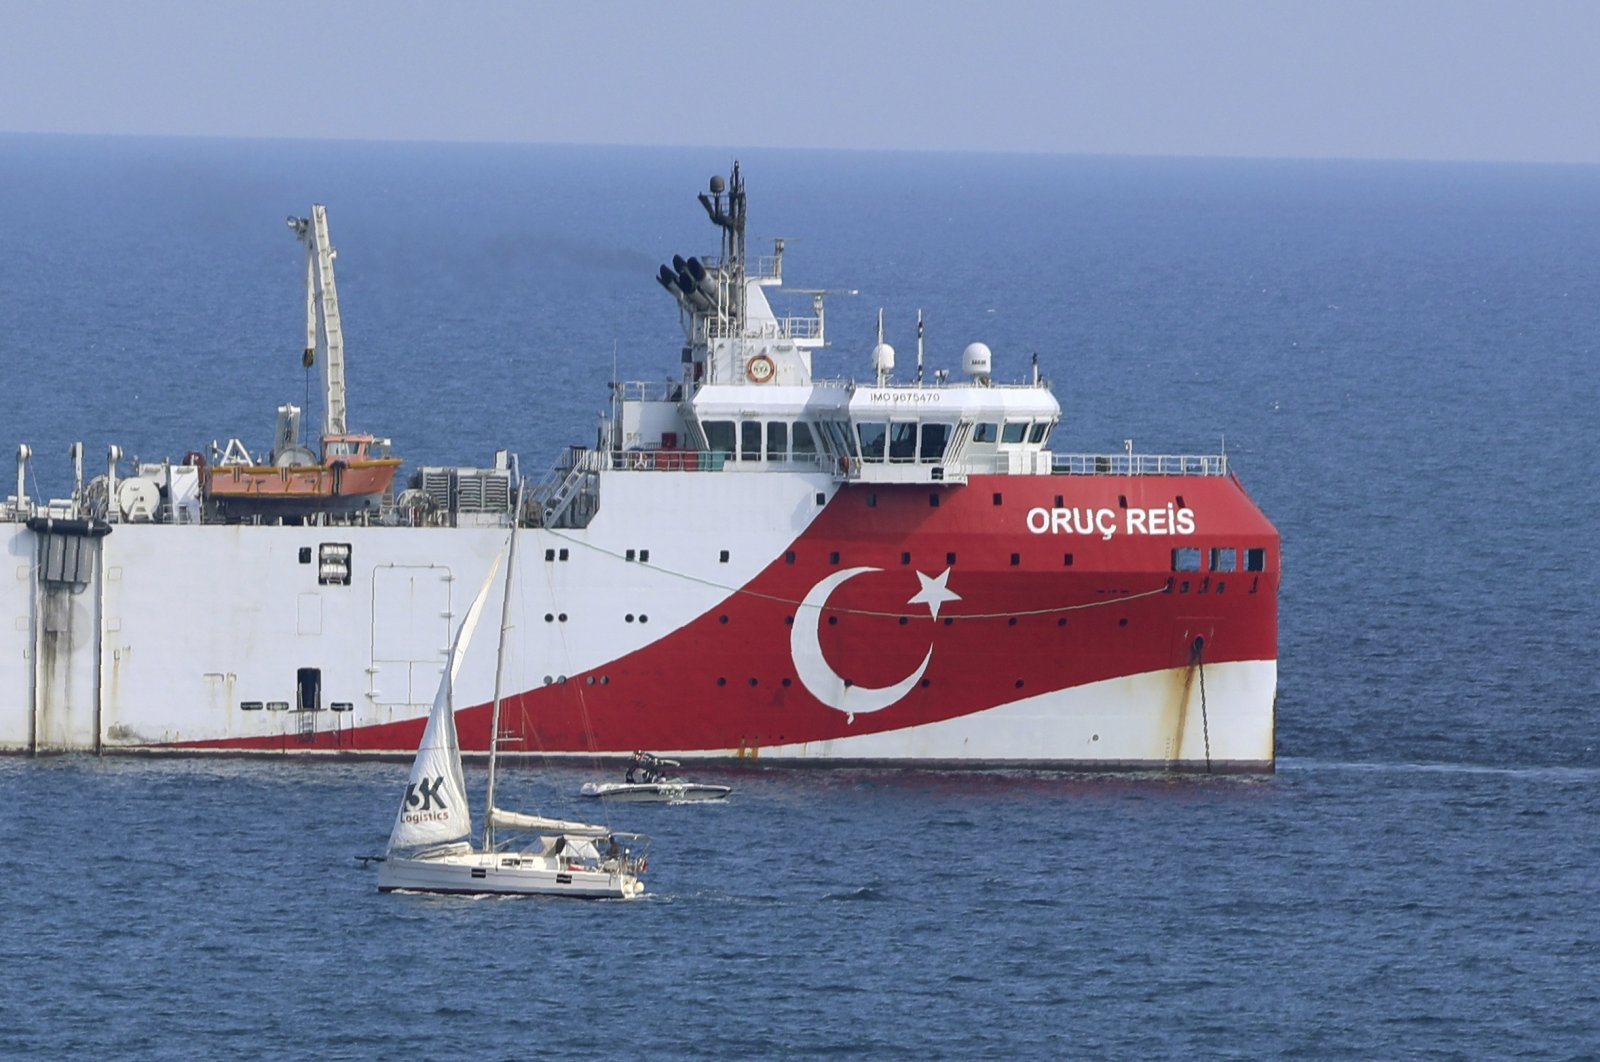 Turkish research vessel Oruç Reis anchored off the coast of Antalya on the Mediterranean, Turkey, Sept. 13, 2020. (AP Photo)